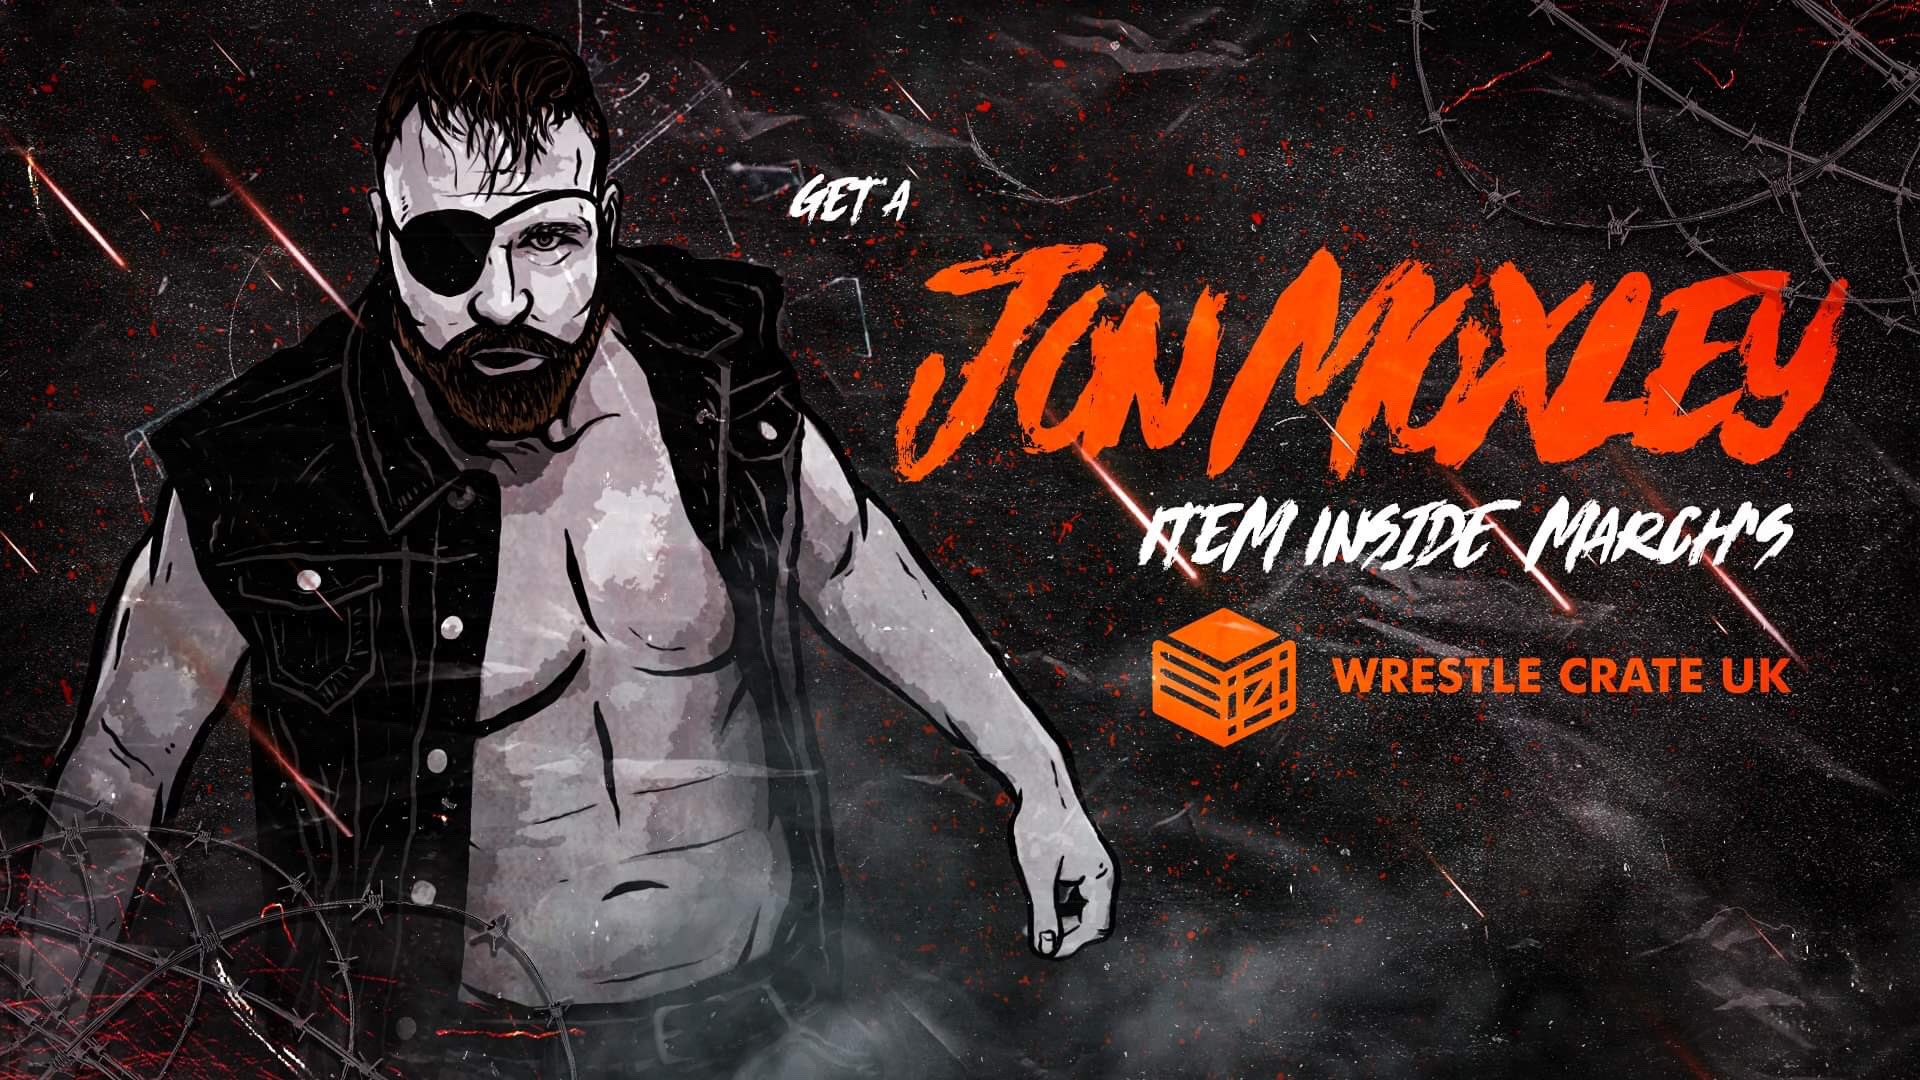 Wrestle Crate UK announces Jon Moxley item for March